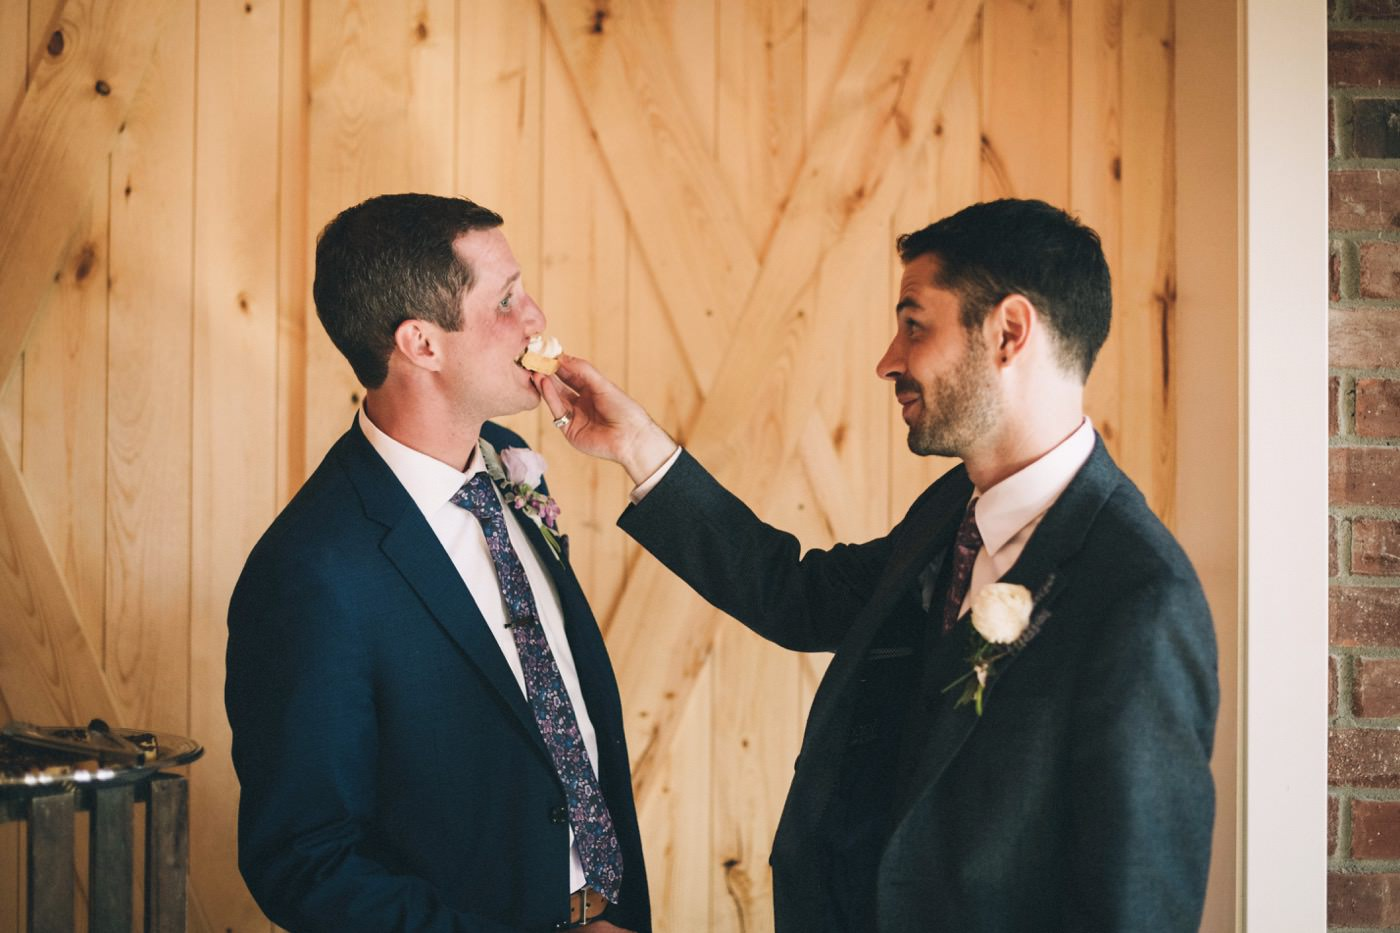 Will-Nate-Louisville-LGBTQ-Pride-Month-Kentucky-Wedding-By-Sarah-Katherine-Davis-Photograpy0050.JPG